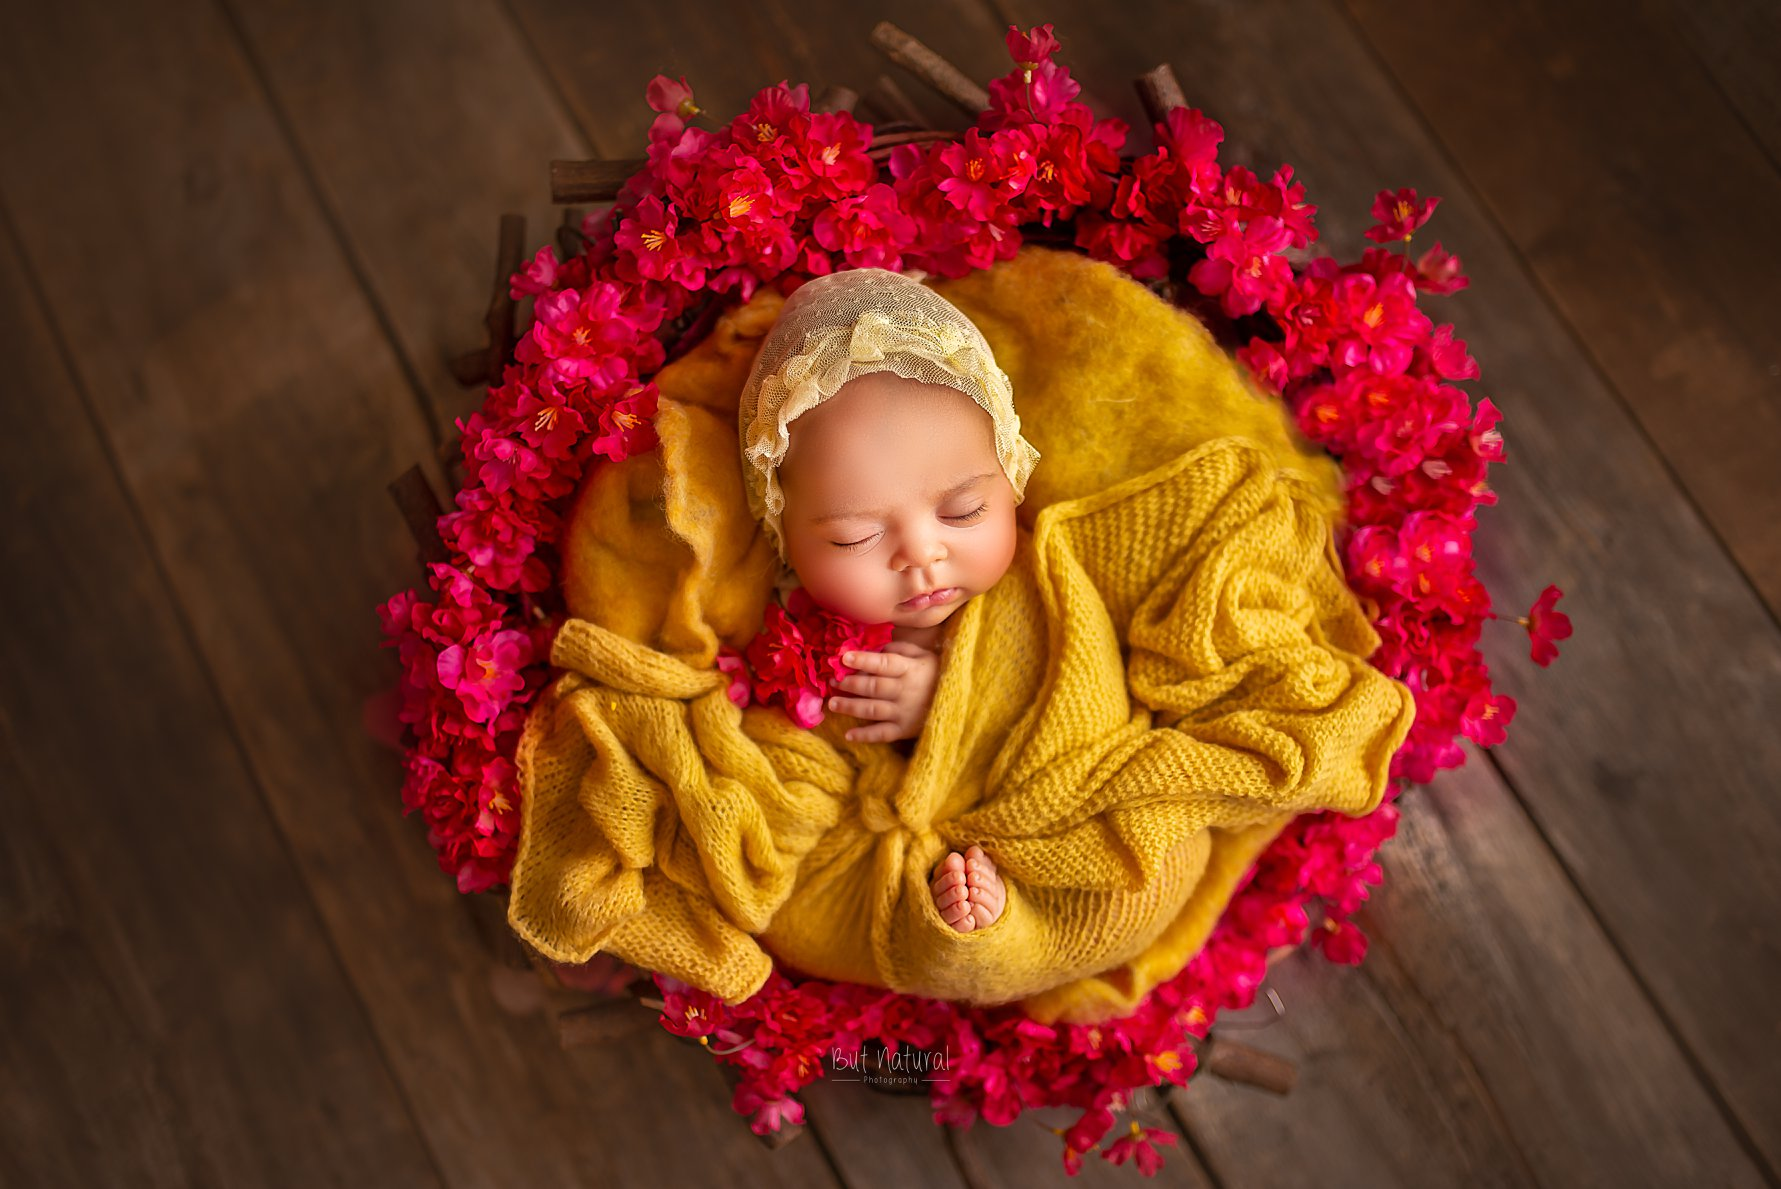 Newborn baby sleeping on a red coloured round-shaped flowered prop | But Natural Photography, Sujata Setia